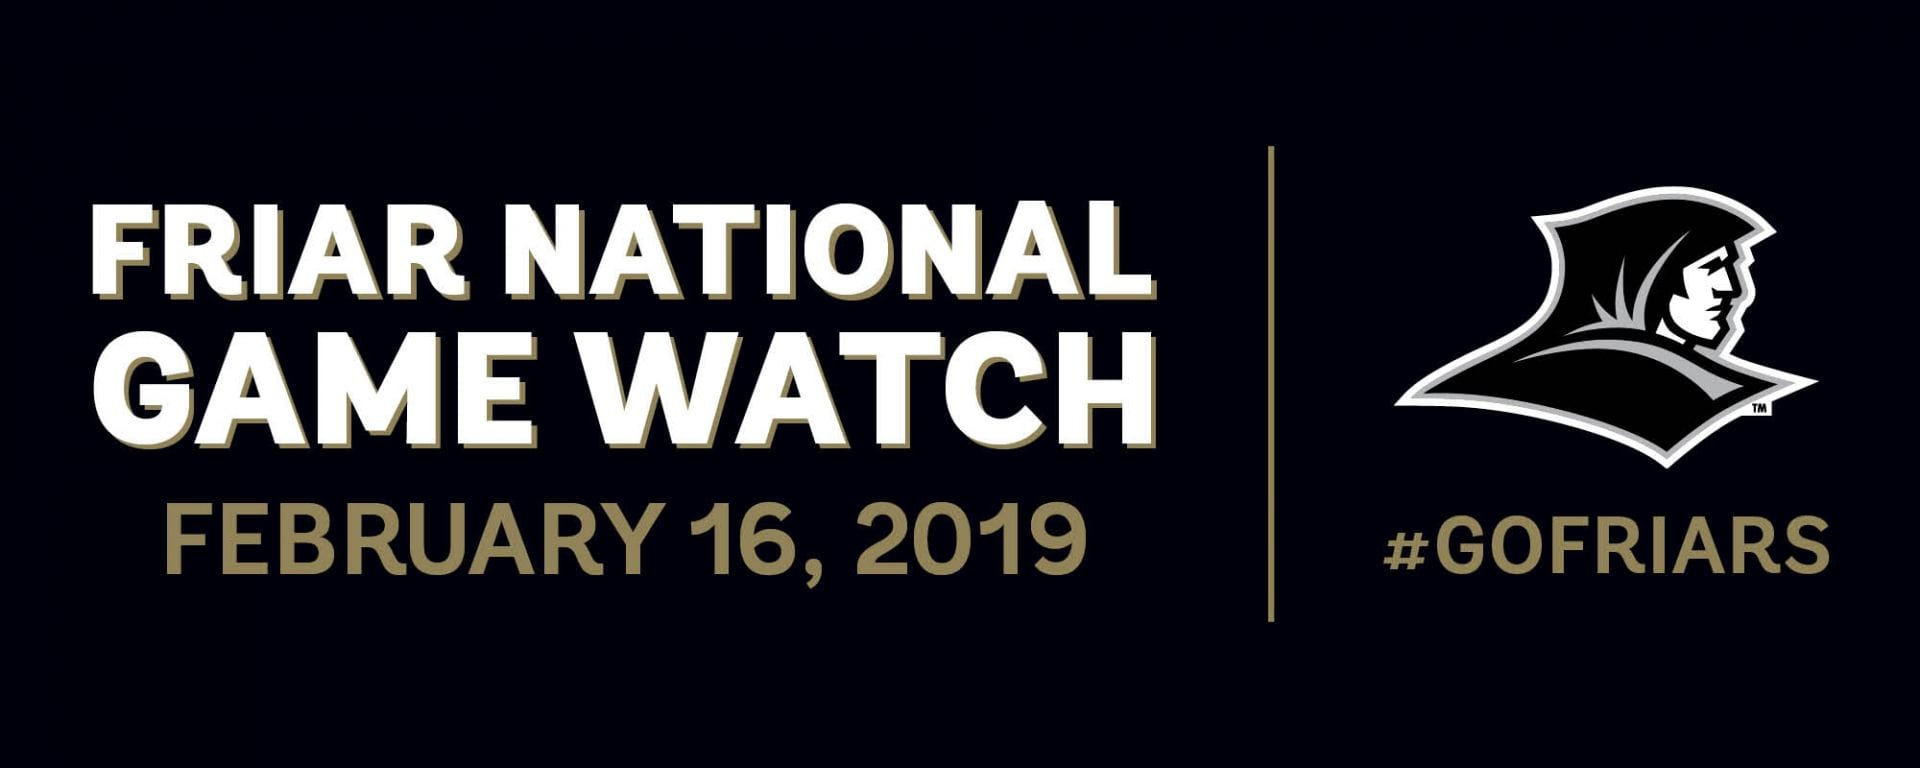 friar national game watch - feb. 16, 2019